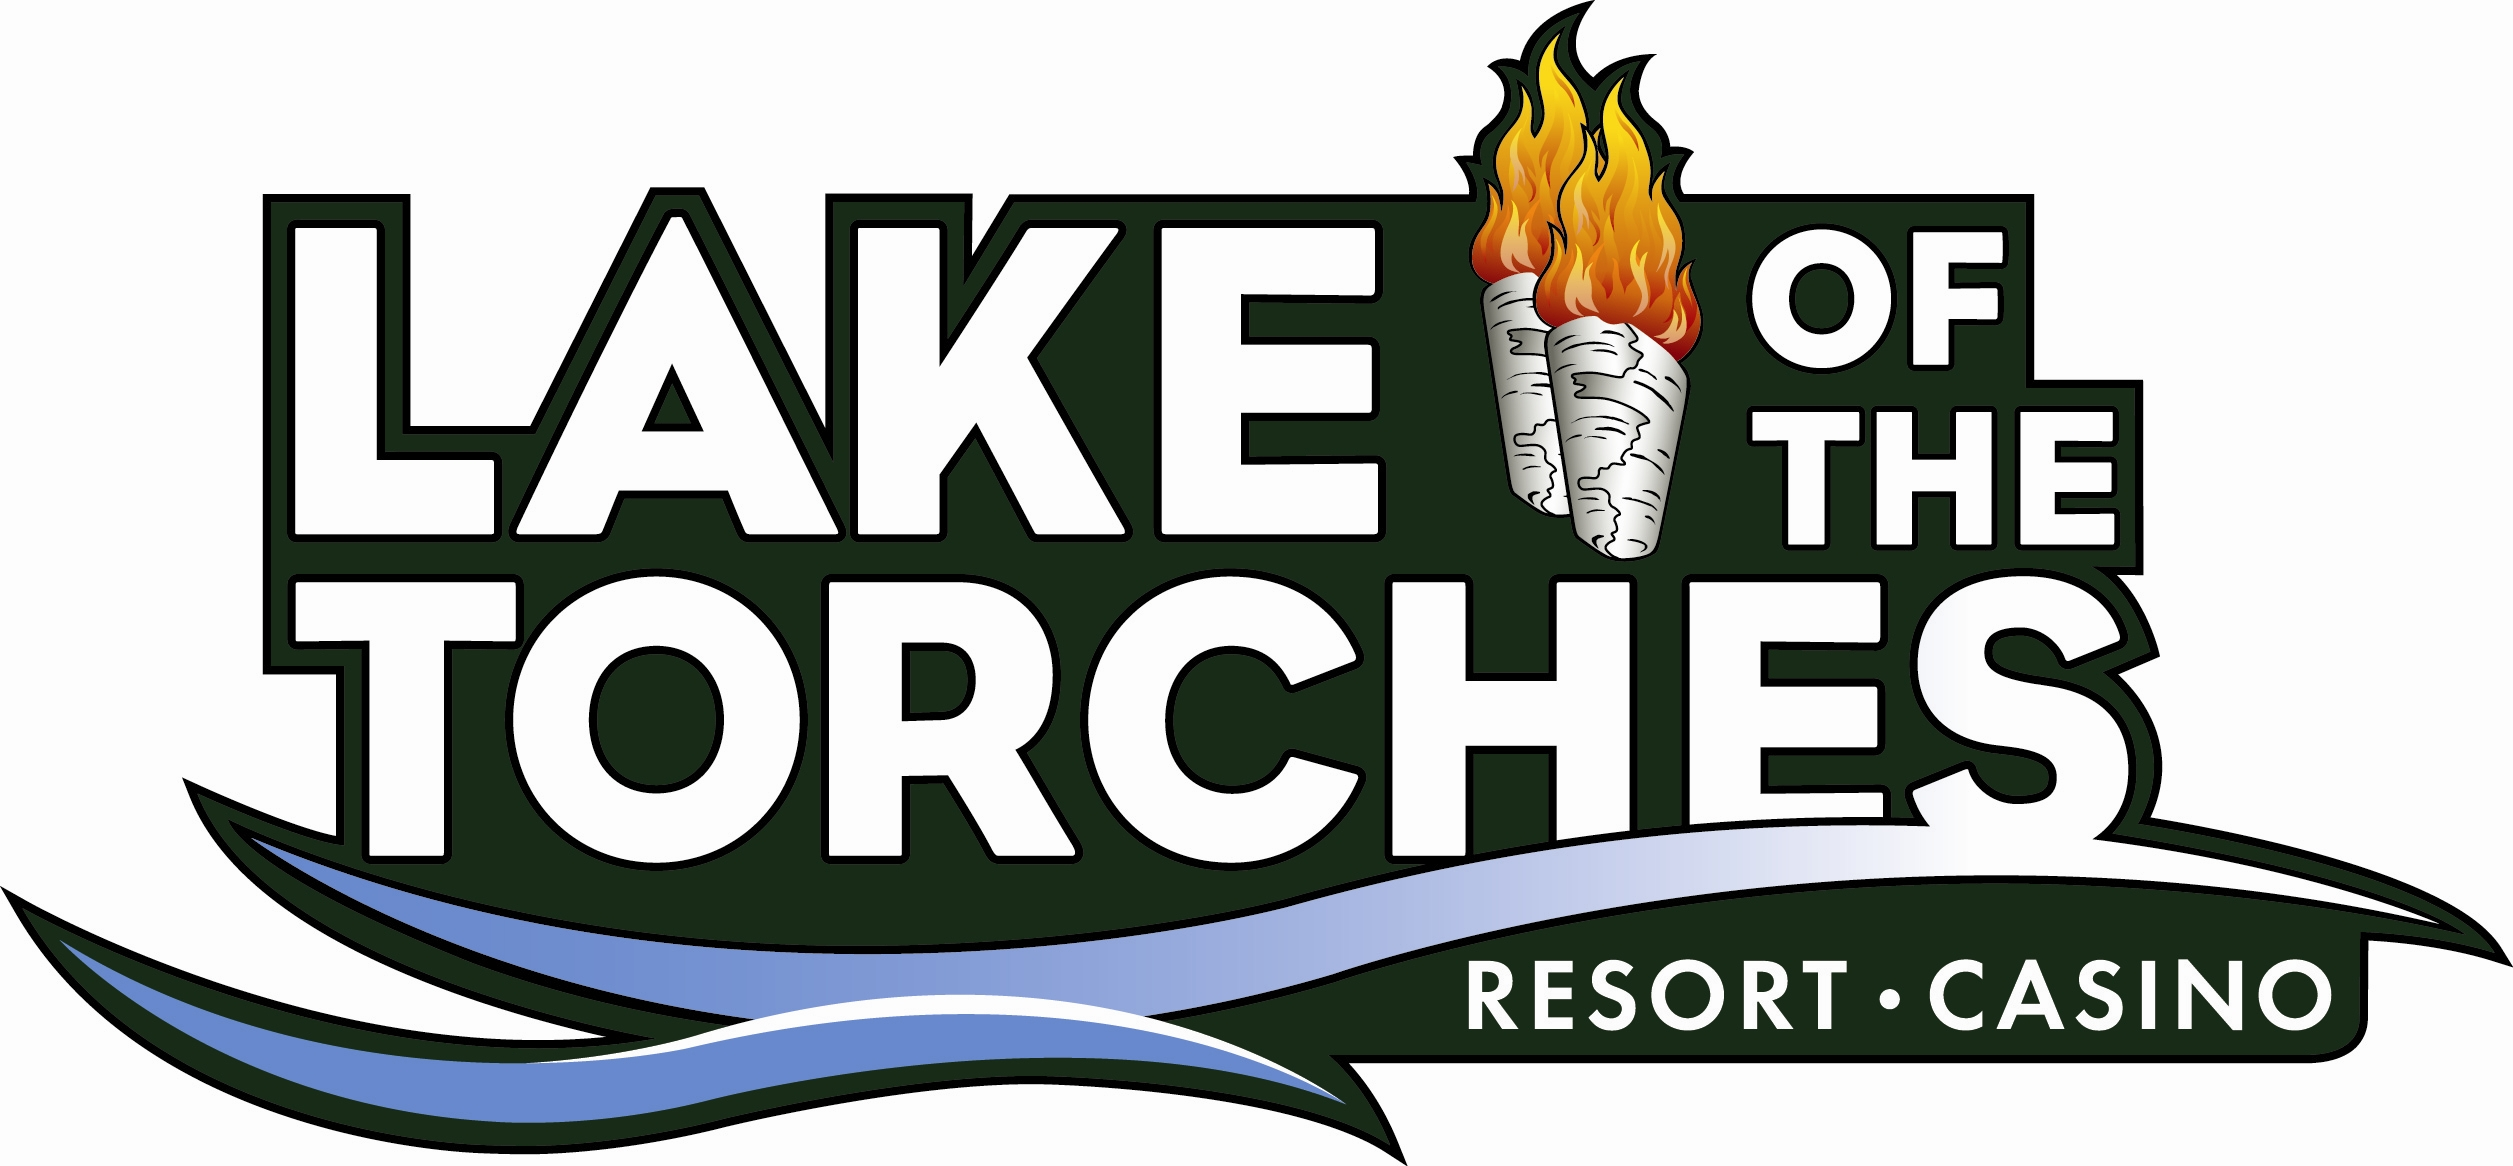 Lake of the torches resort casino sirenis tropical suites and casino hotel